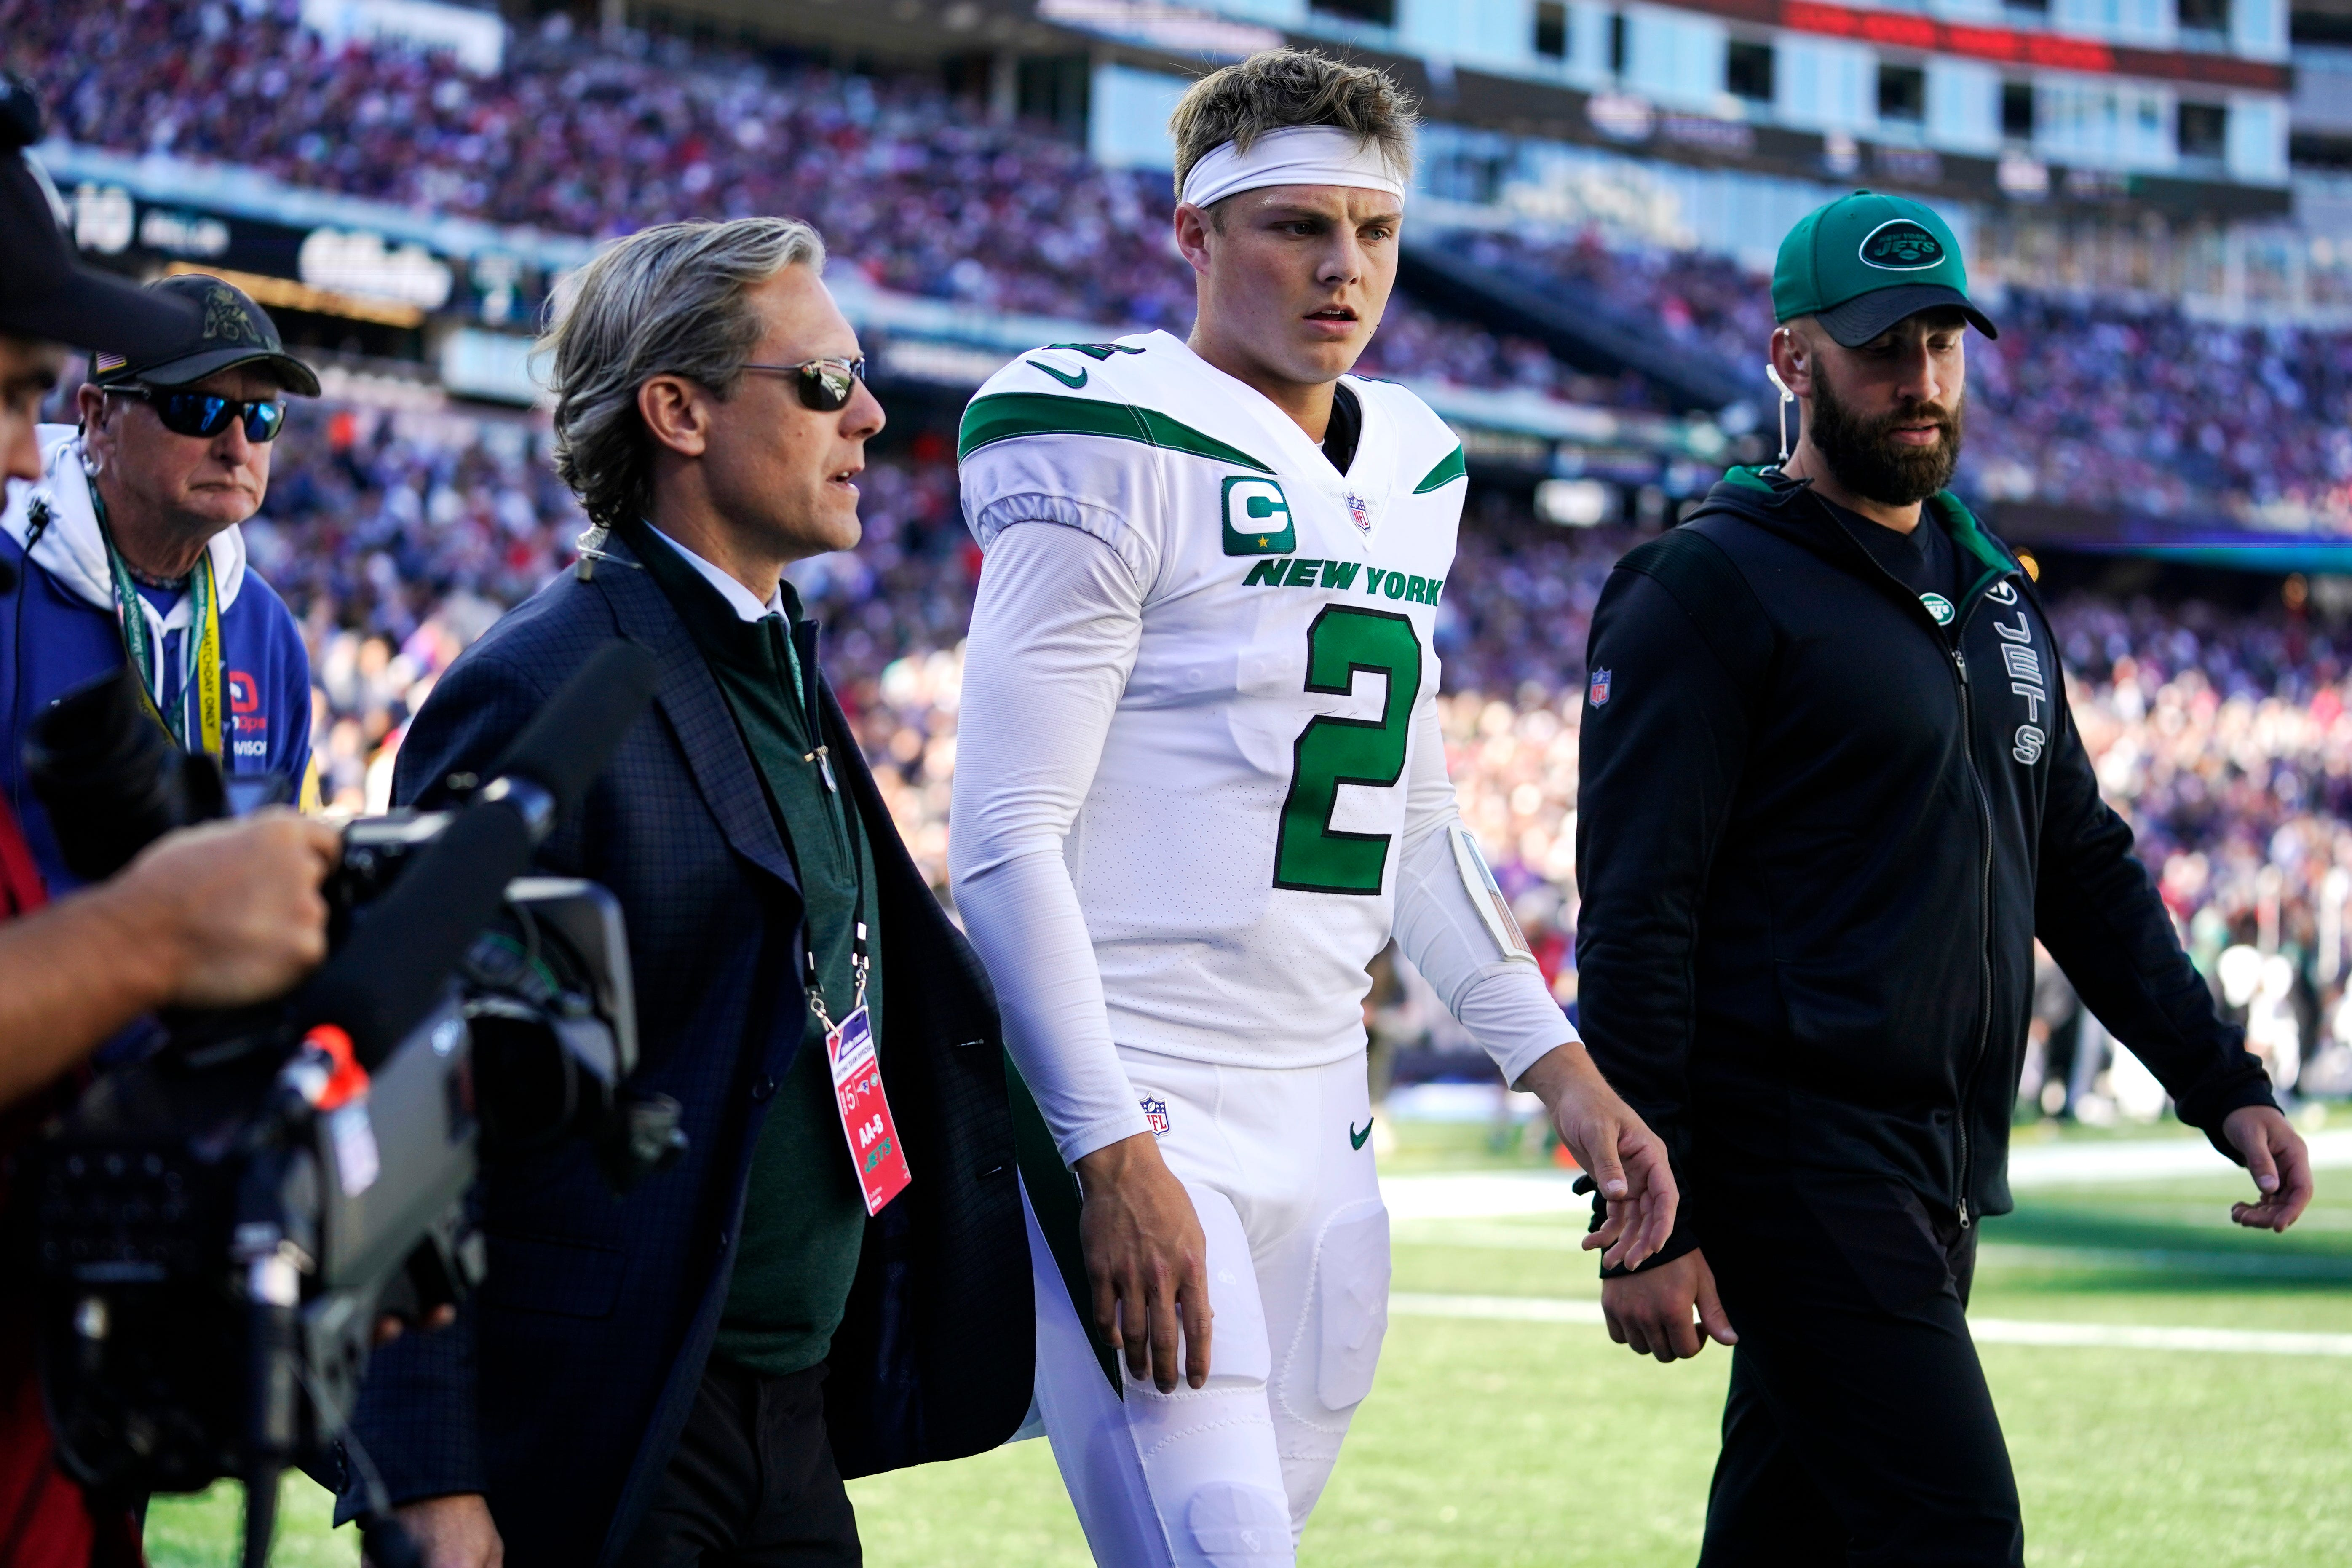 NY Jets humiliated by Patriots in 54-13 loss. Zach Wilson's health is all that matters now